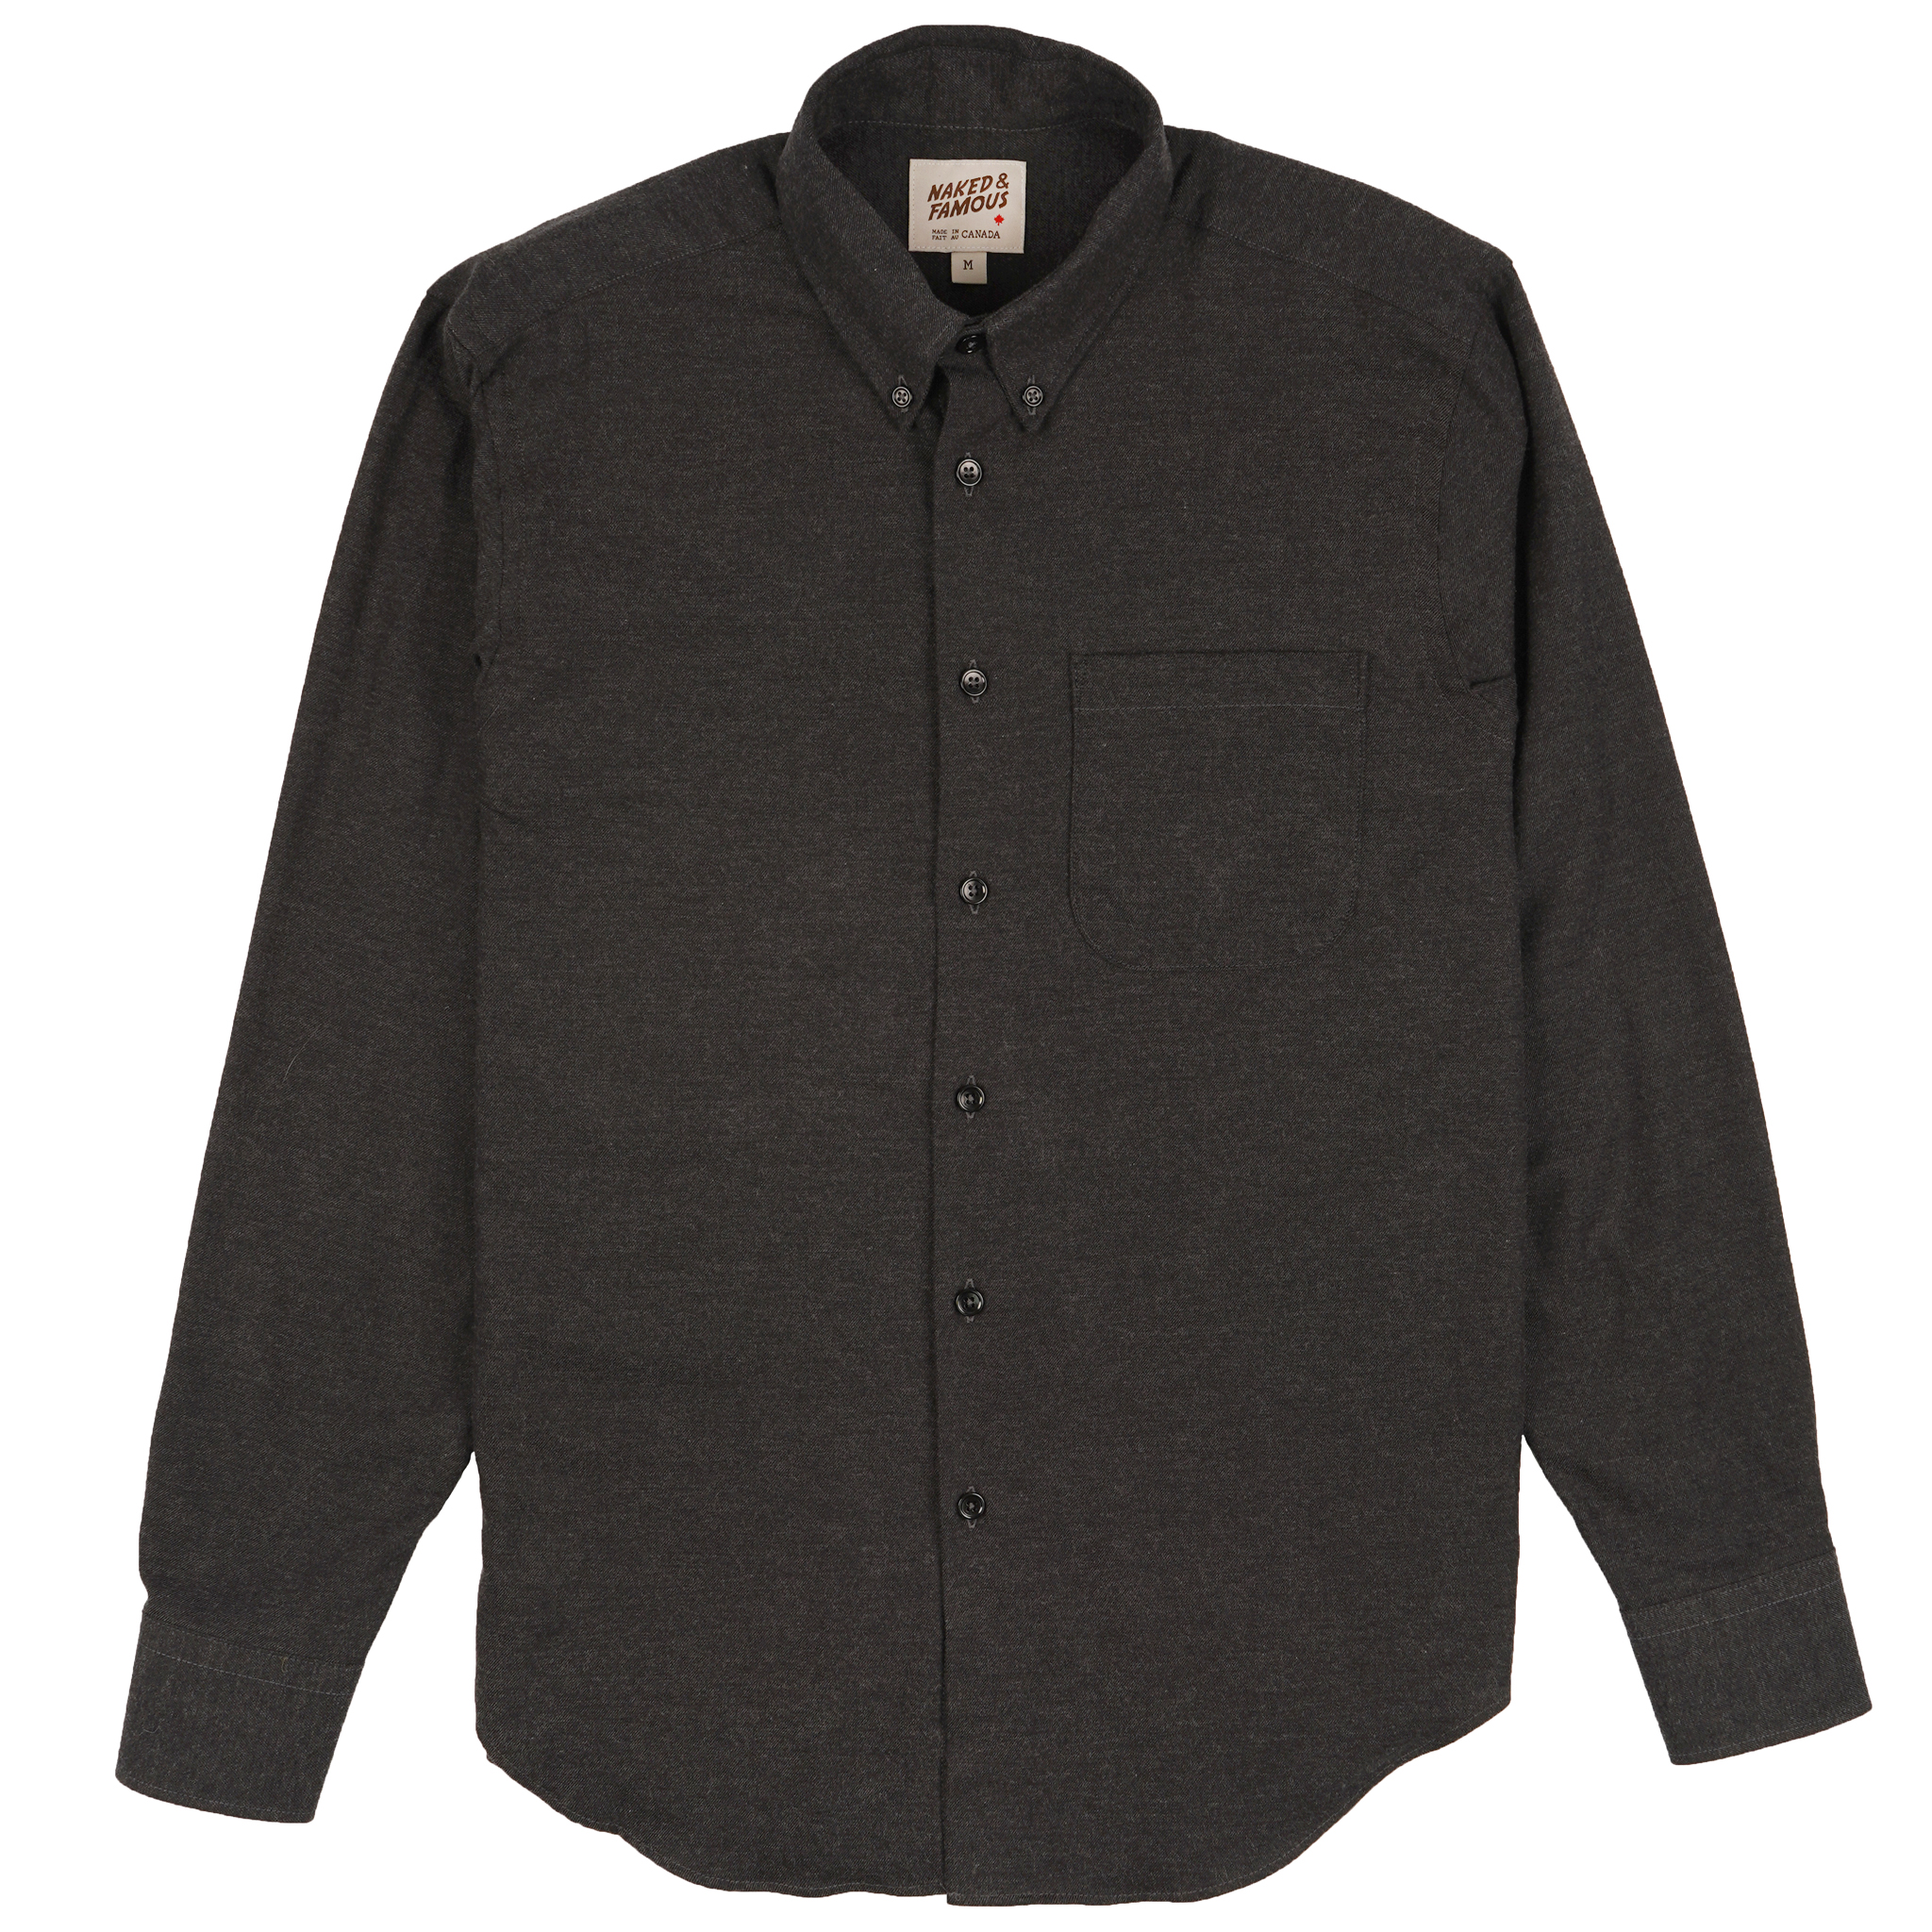 CLassic Flannel - Charcoal - Easy Shirt